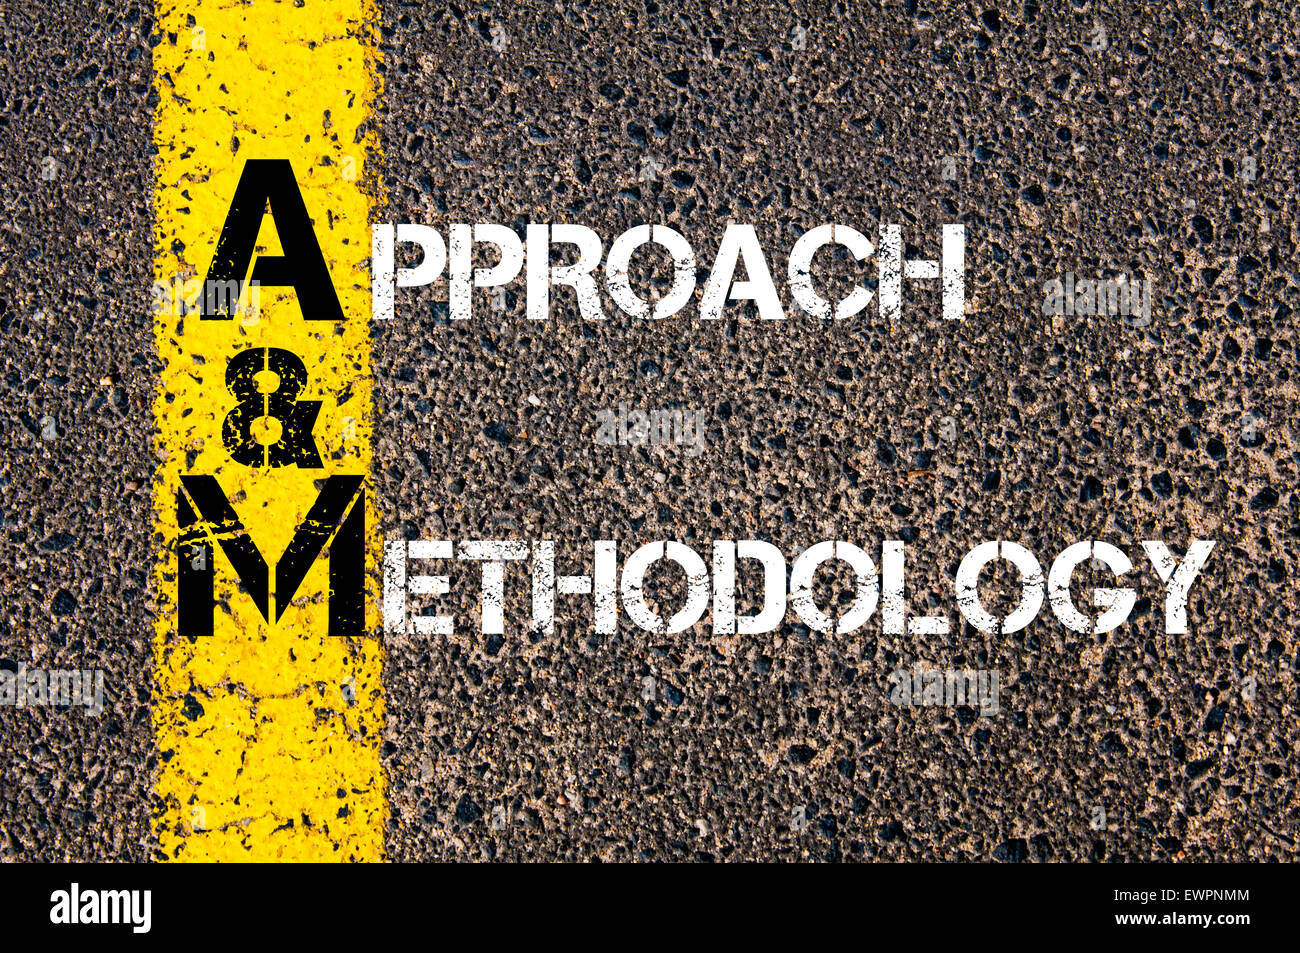 Concept image of Business Acronym AM as Approach and Methodology  written over road marking yellow paint line. - Stock Image